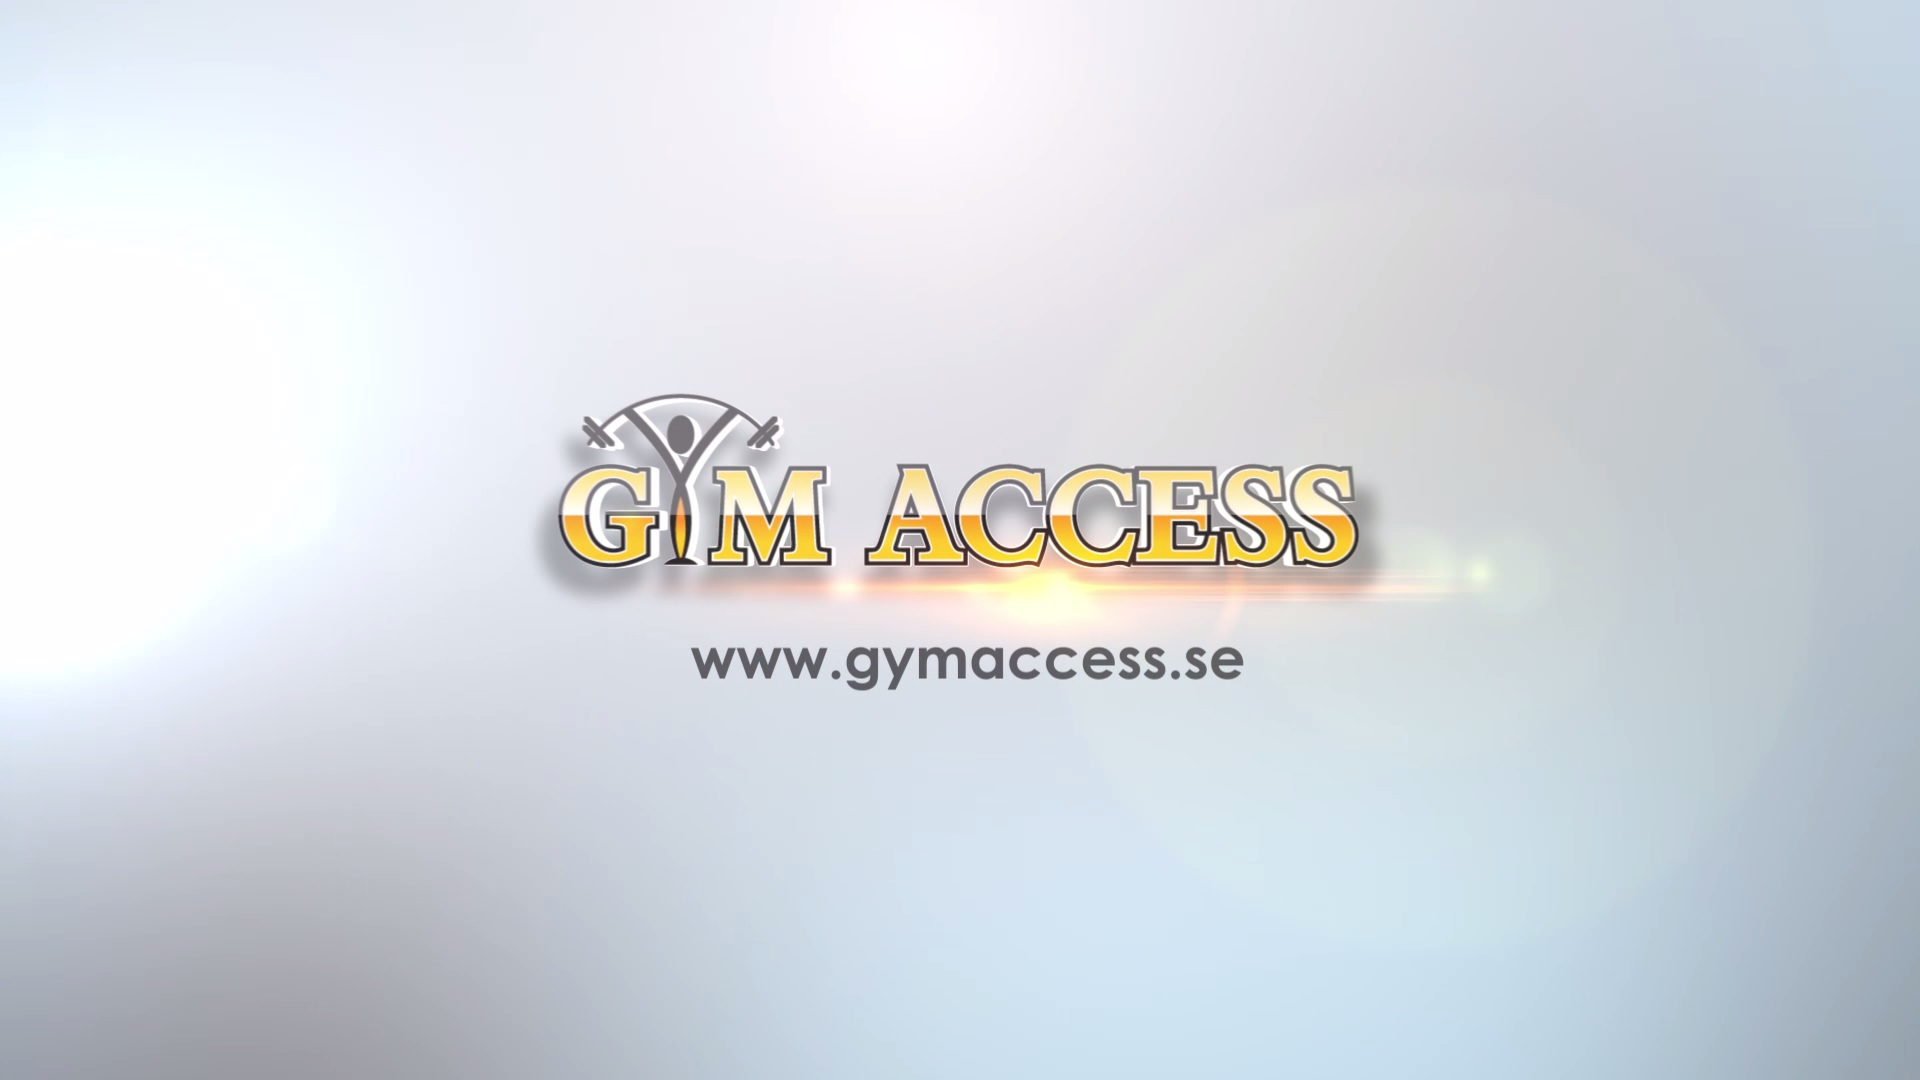 Gym Access